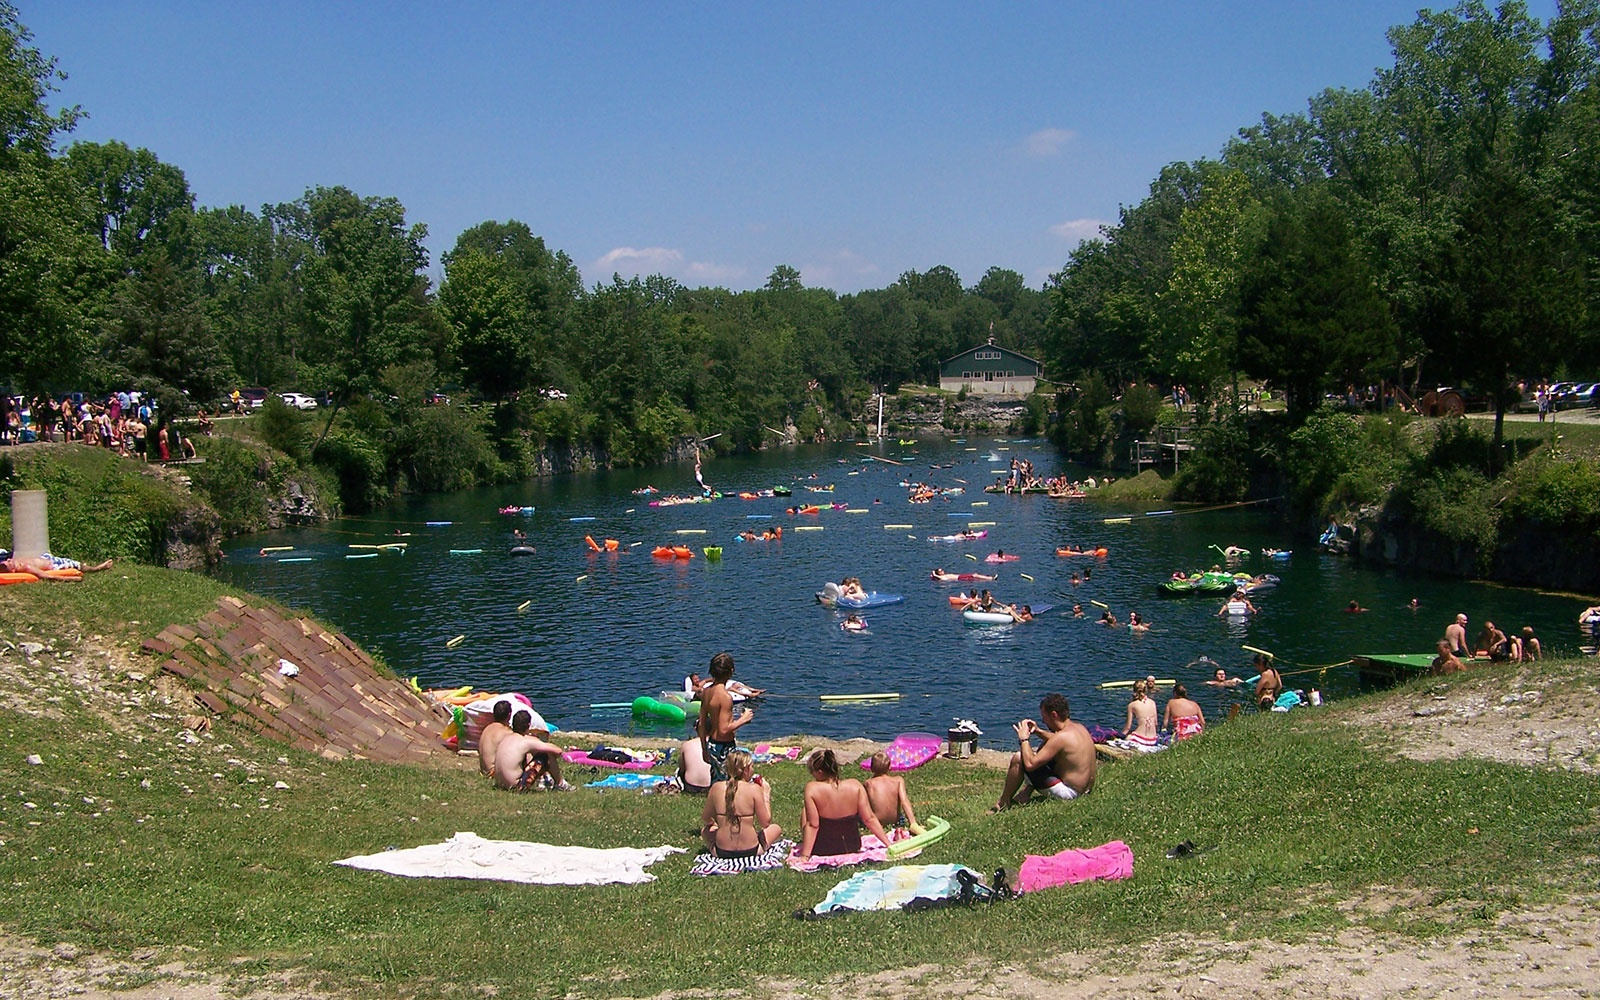 swimmers at White Rock Park swimming hole in St. Paul, IN